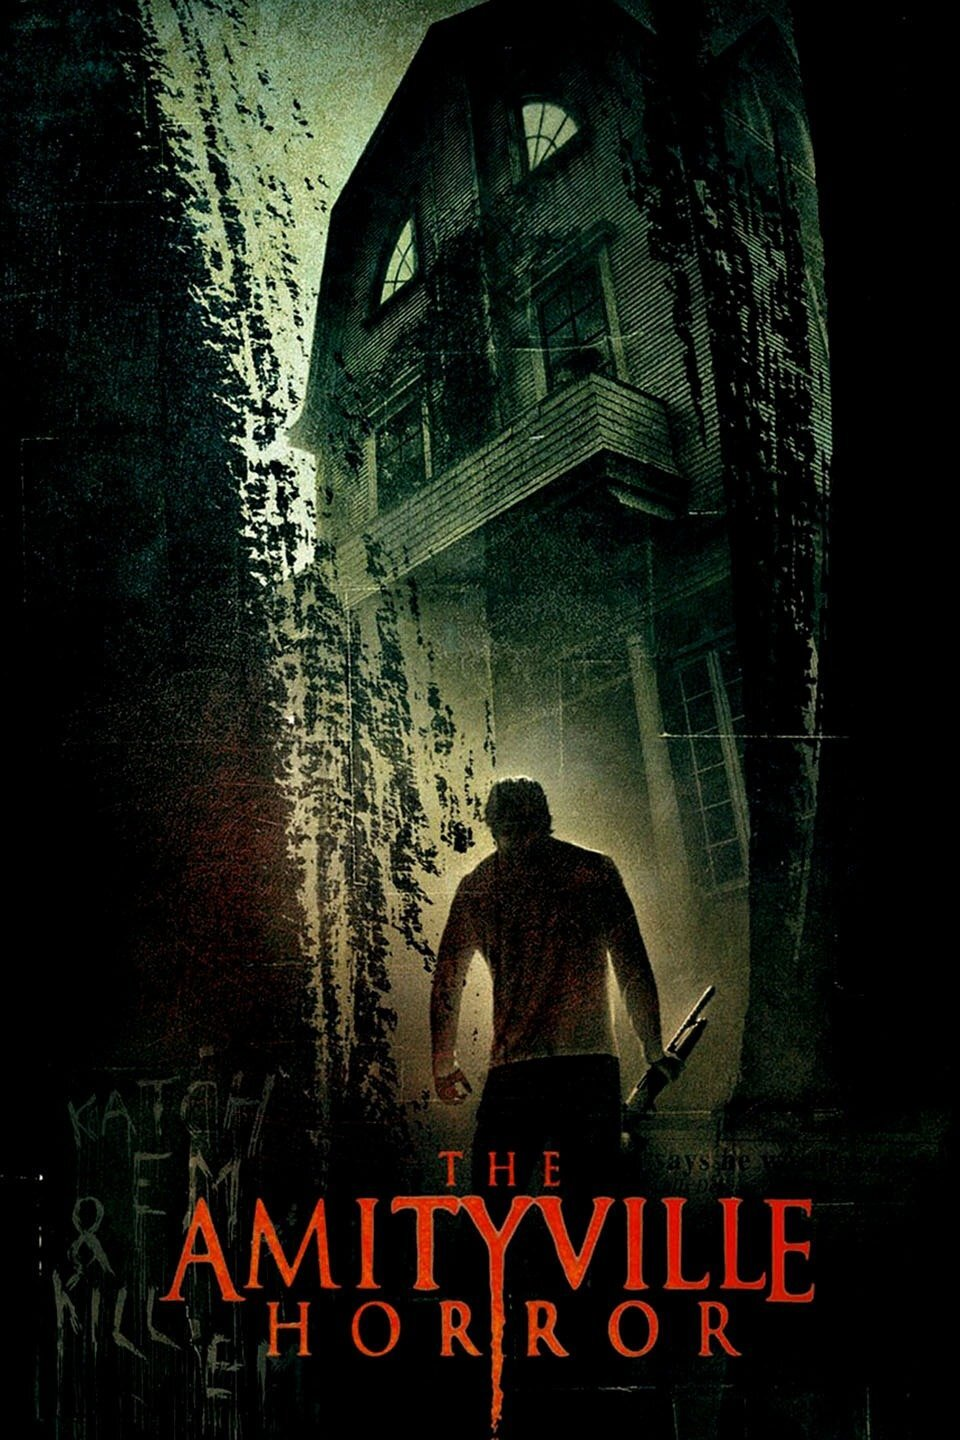 The Amityville Horror (2005) - Directed by: Andrew DouglasStarring: Ryan Reynolds, Melissa George, Chloe Grace MoretzRated: R for Violence, Disturbing Images, Language, Brief Sexuality and Drug UseRunning Time: 1h 34mTMM Score: 2 StarsSTRENGTHS: Ryan Reynolds, Couple Creepy ScaresWEAKNESSES: Generic, Poor Direction, Not Very Scary